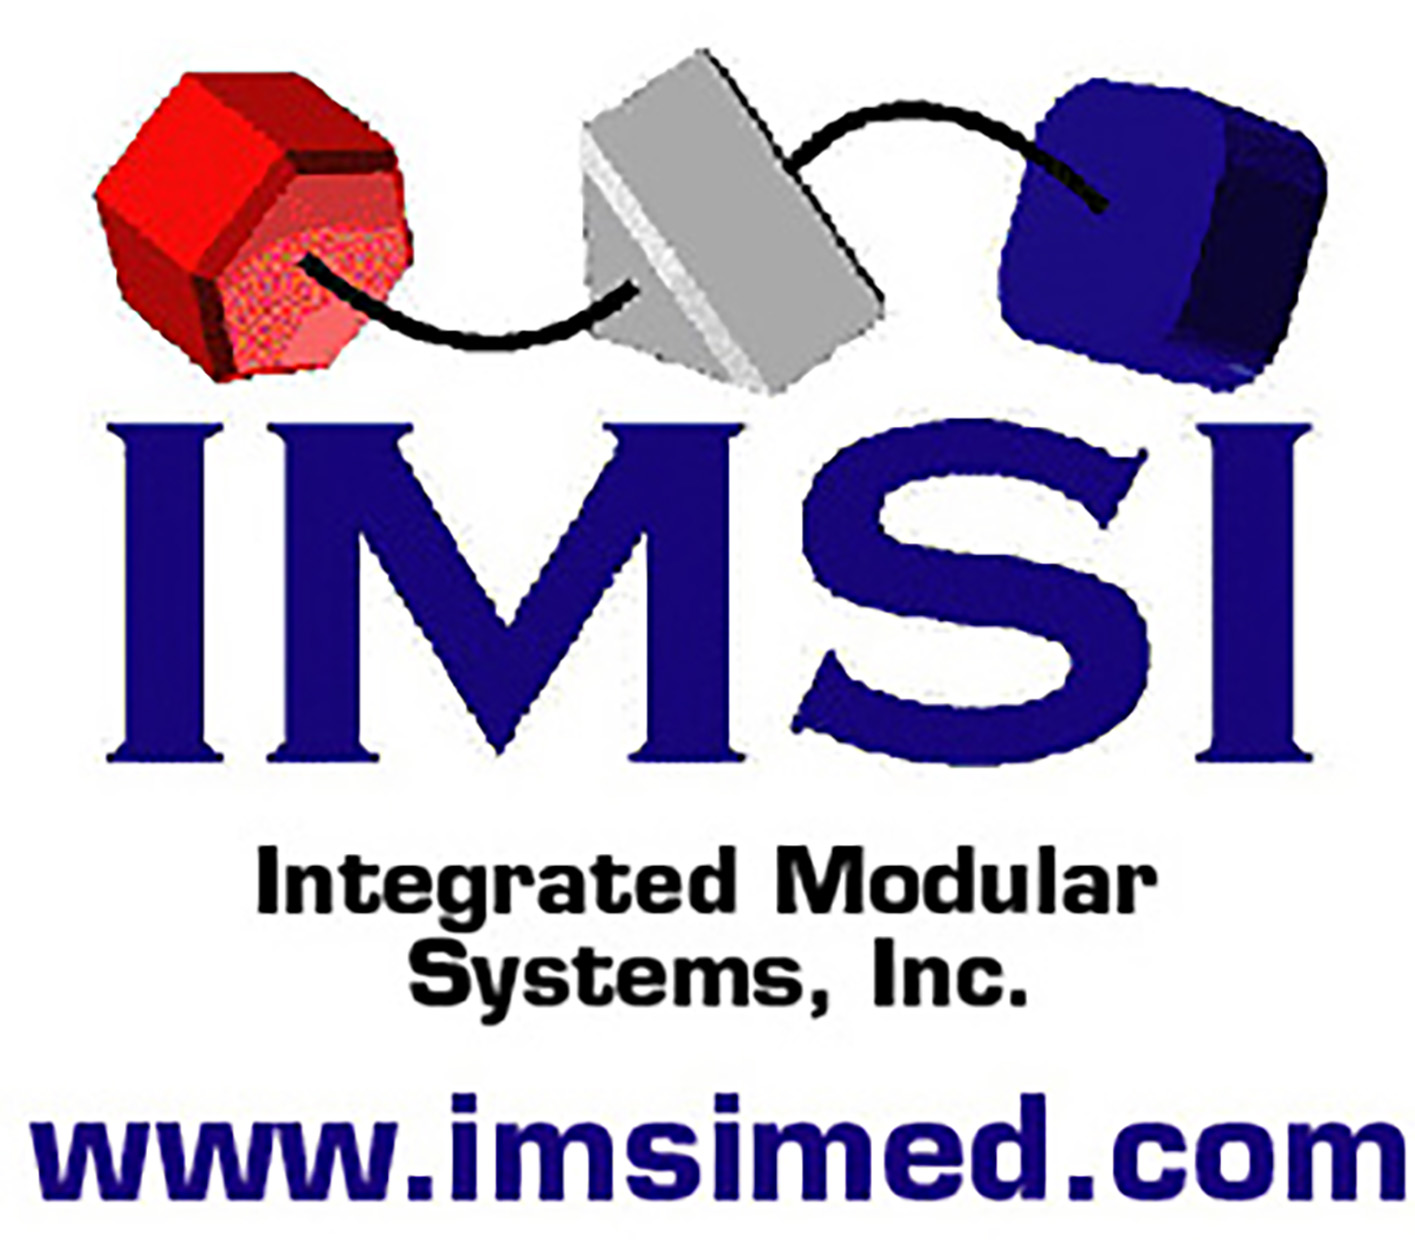 Integrated Modular Systems, Inc.